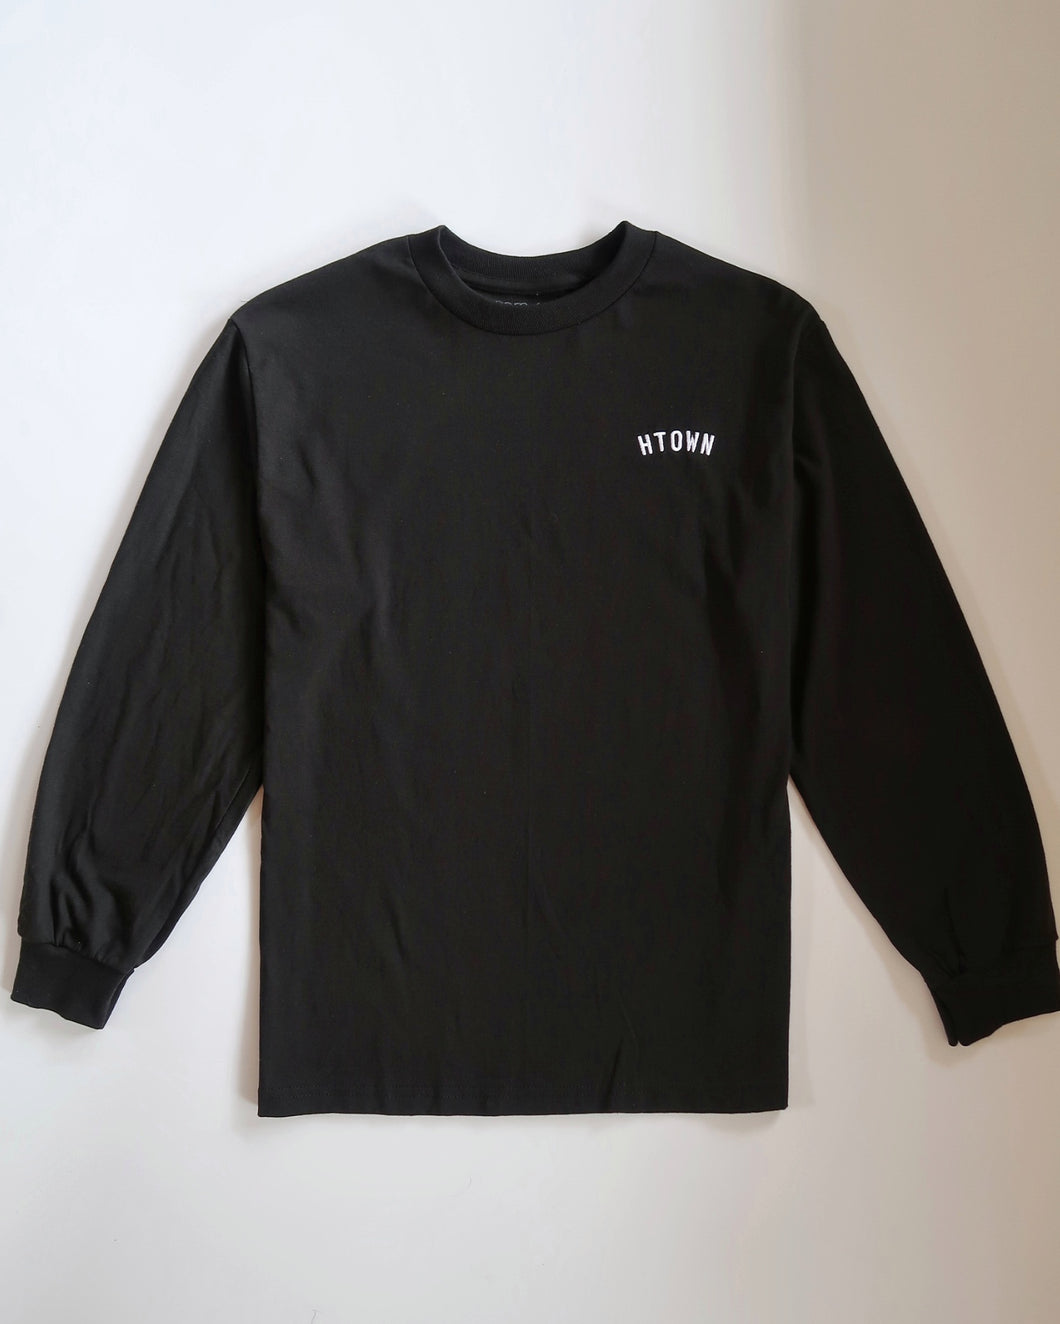 HTOWN Embroidered Longsleeve Tee (Black/White)